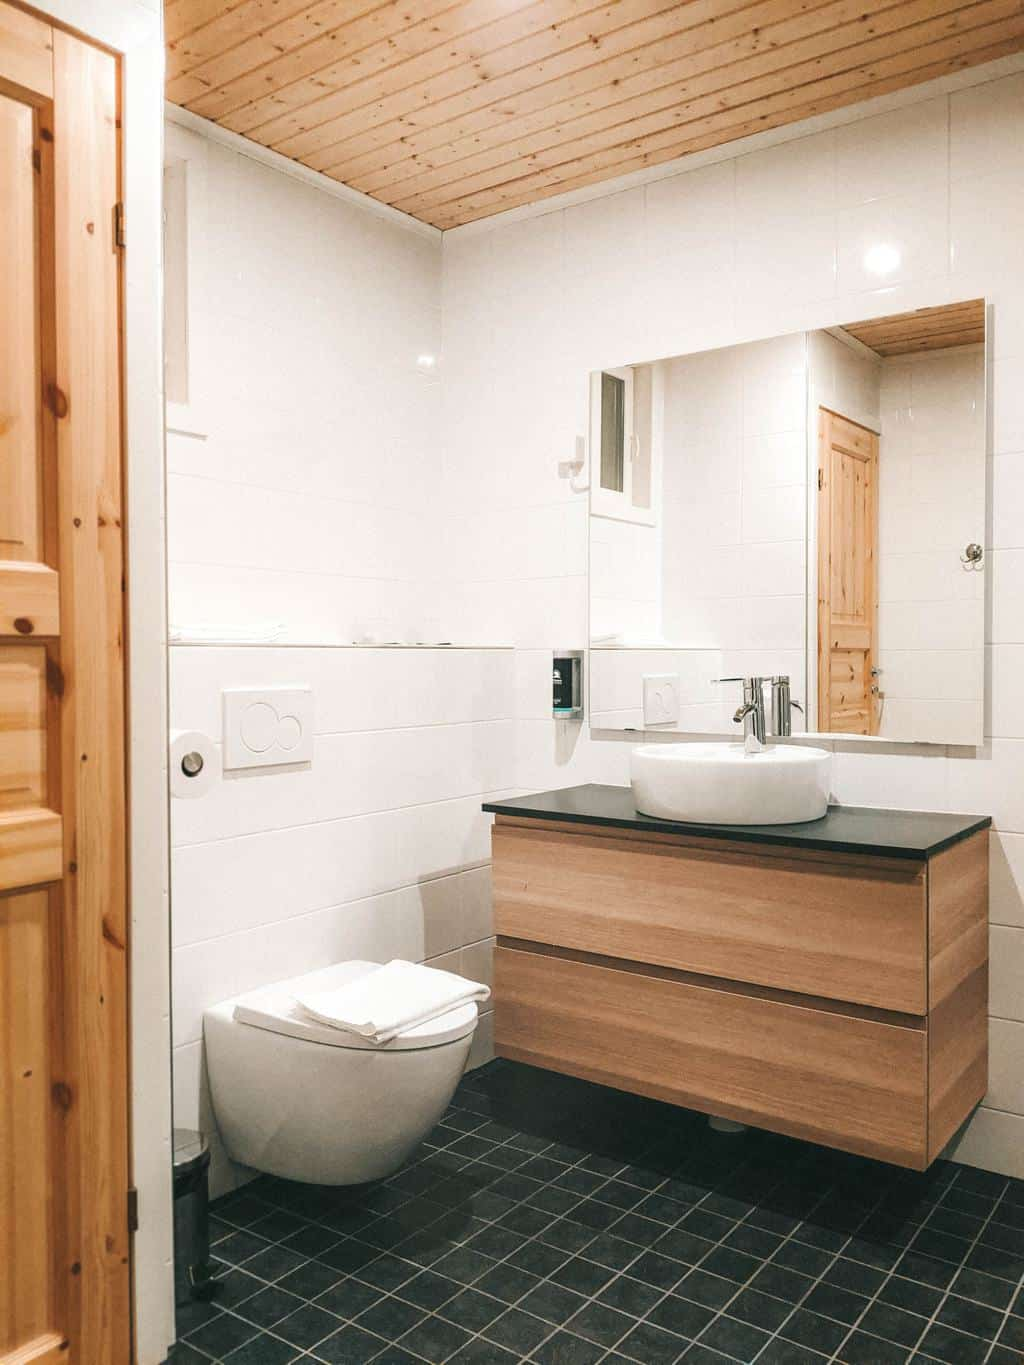 a stylish bathroom Finnish Lapland, Lapland destinations, Lapland Finland, Inghams